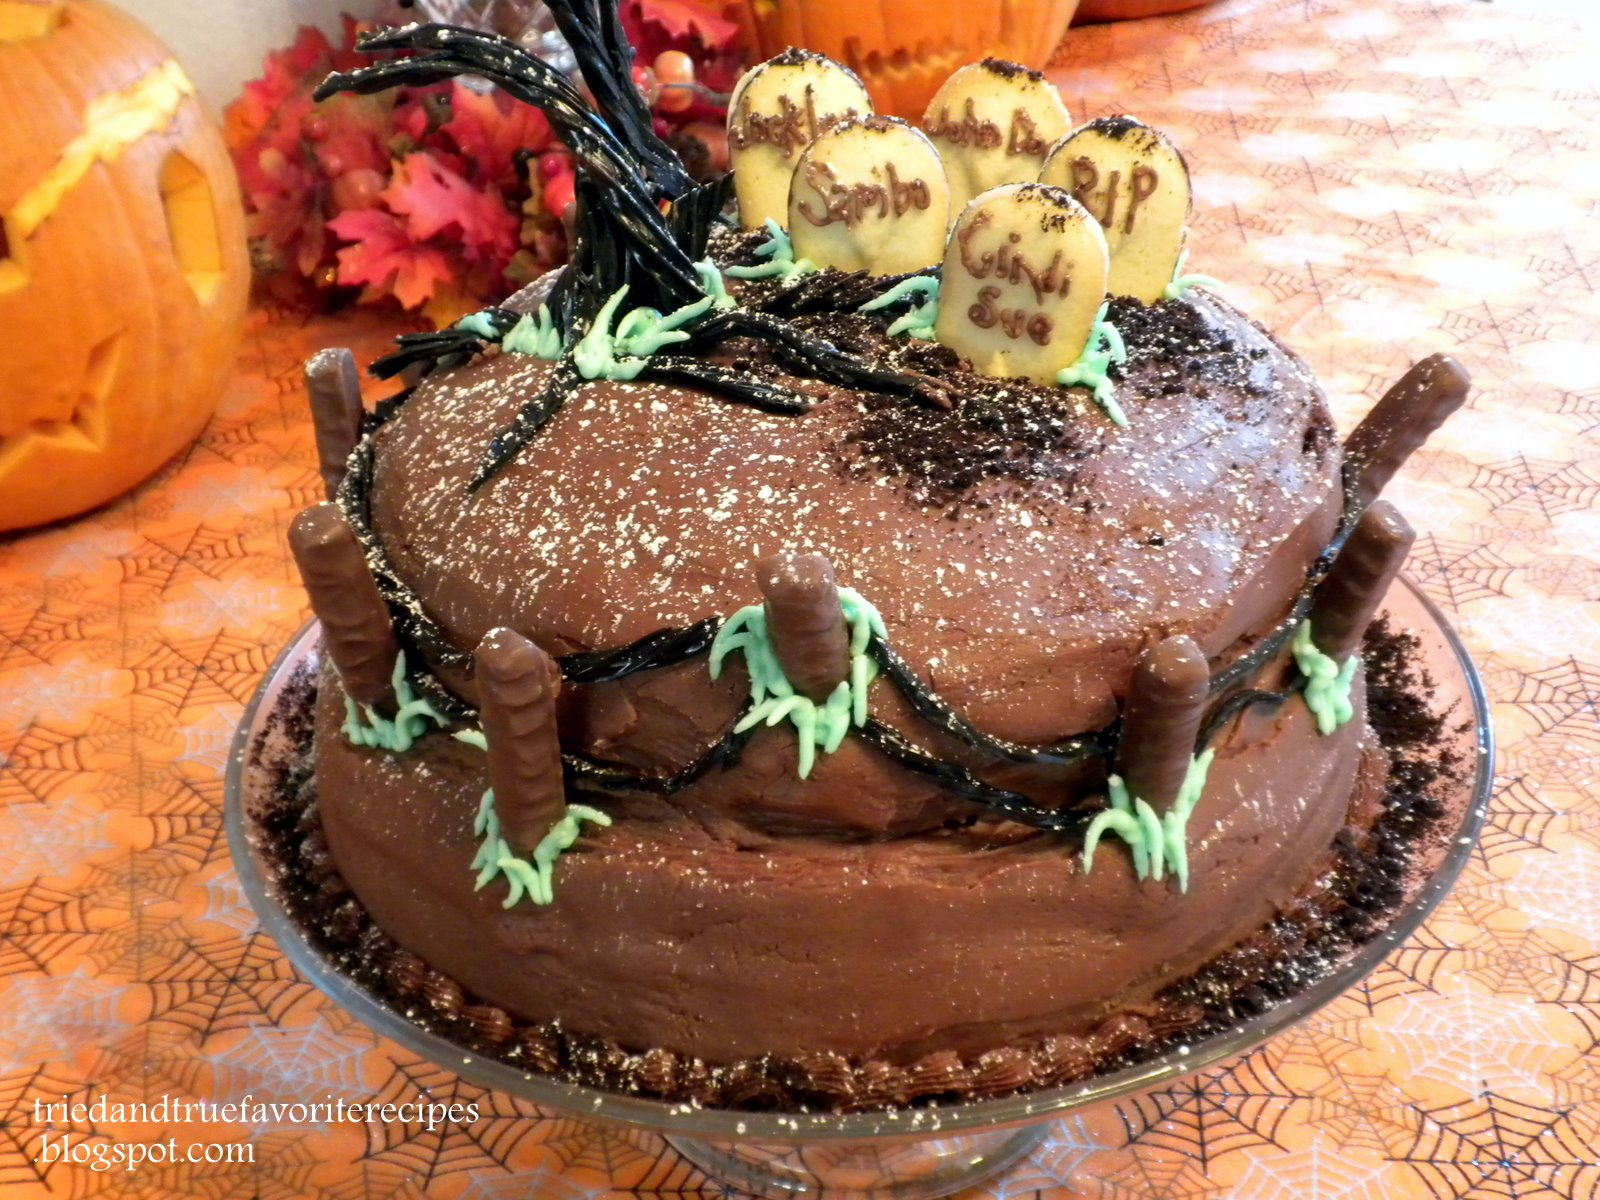 hereu0027s this yearu0027s halloween cake